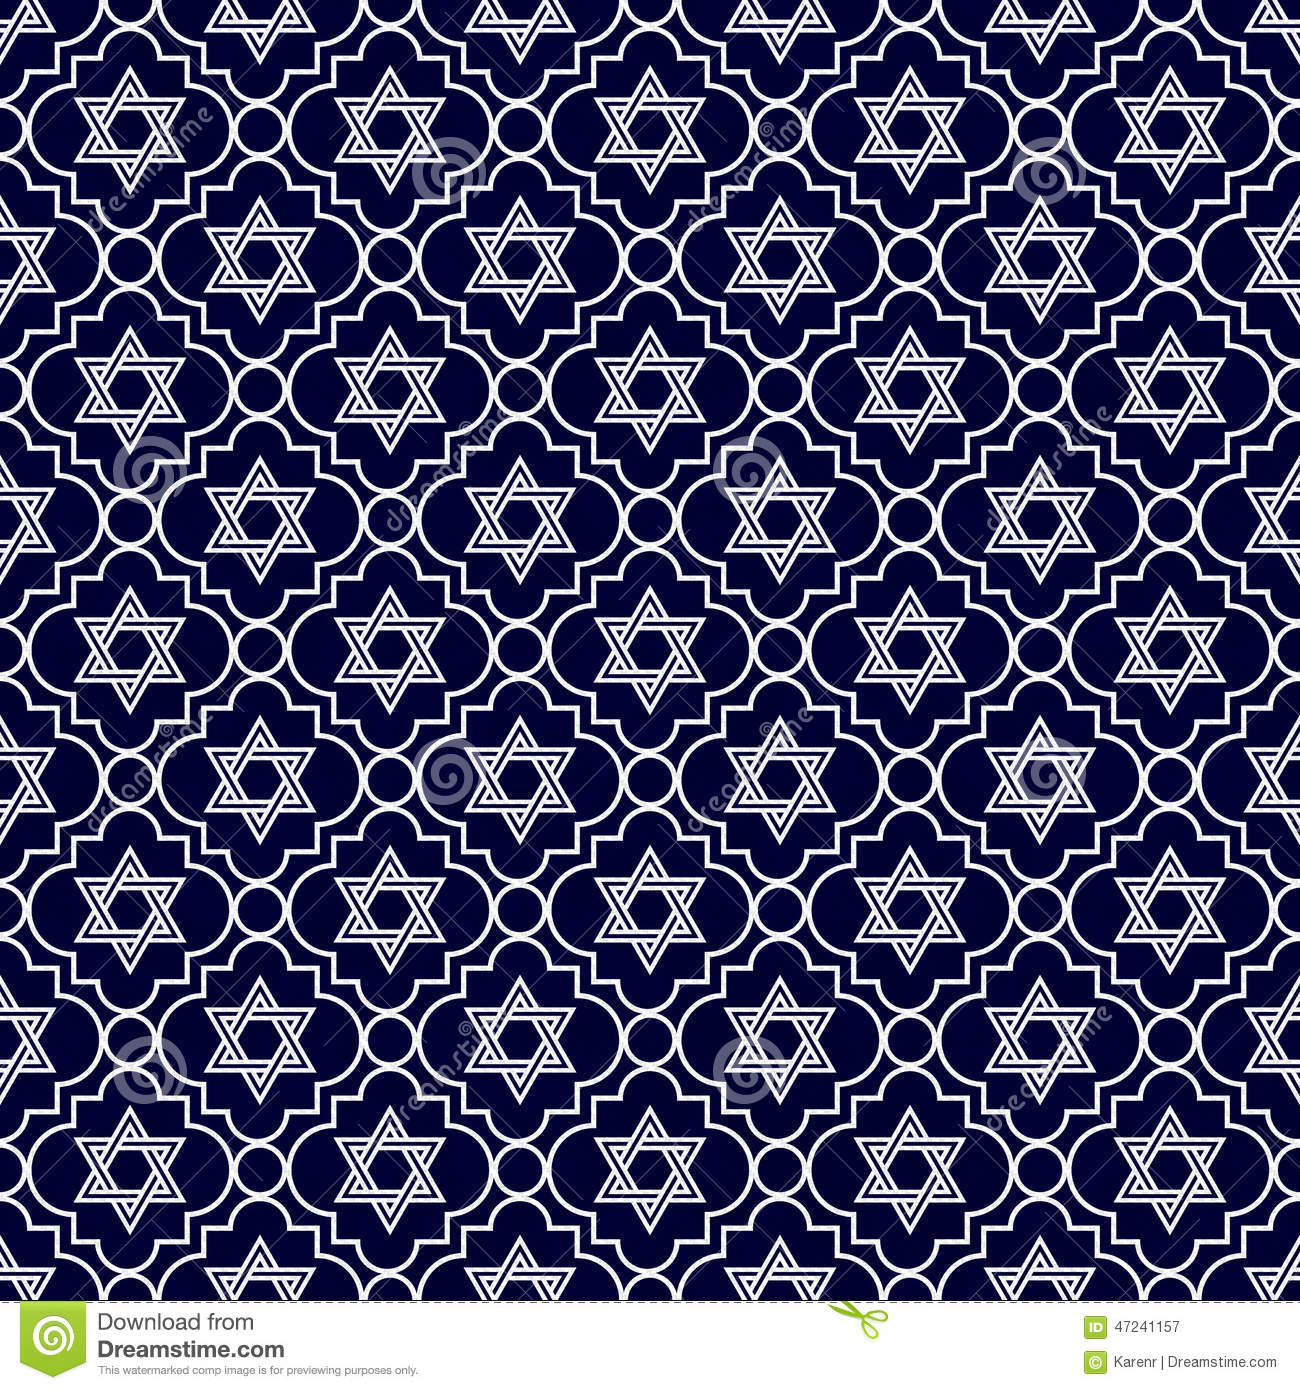 navy blue and white star of david repeat pattern